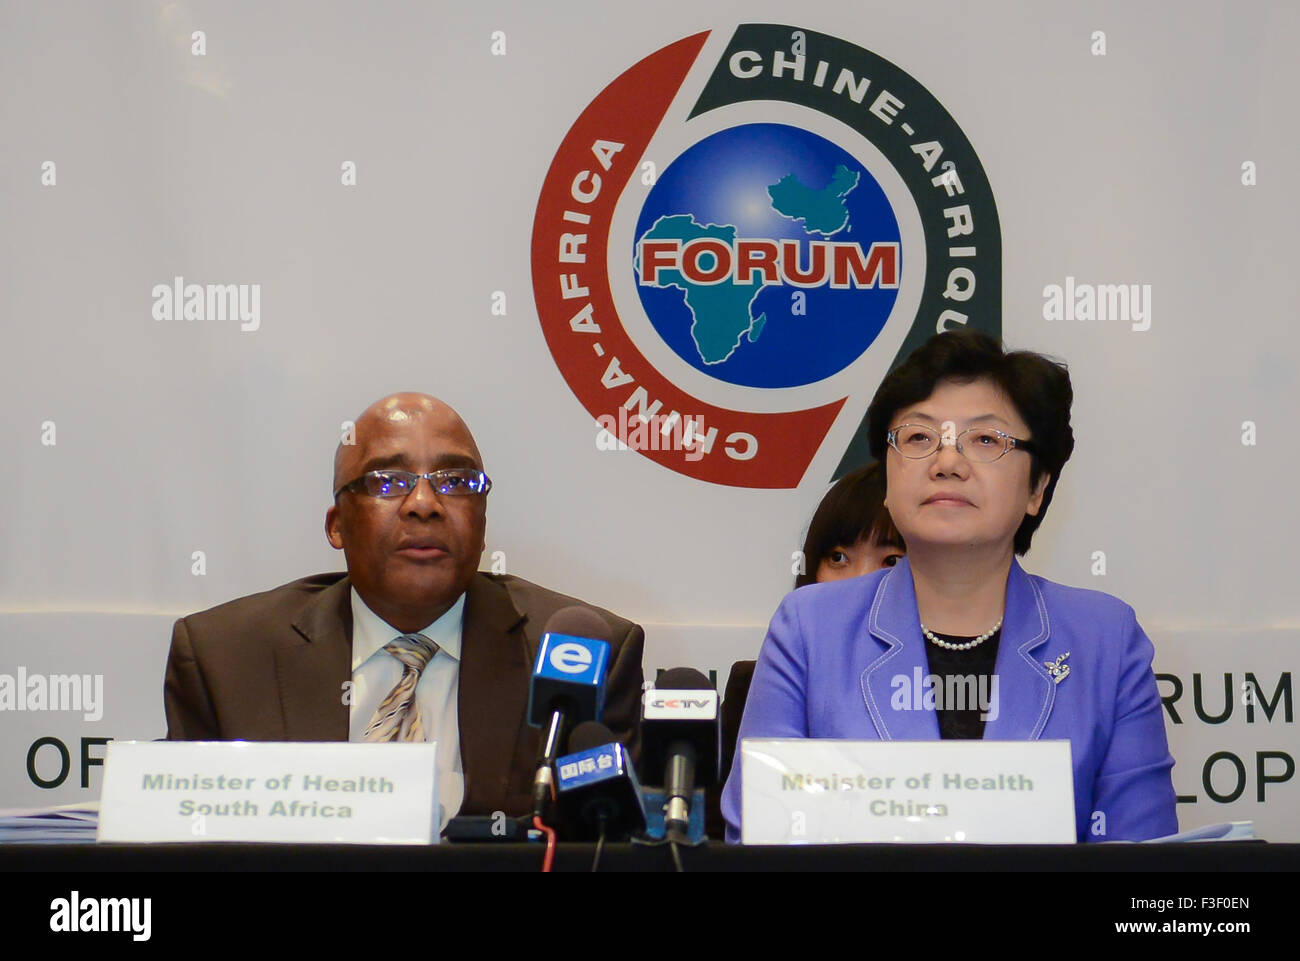 (151006) -- CAPE TOWN, Oct. 6, 2015 (Xinhua) -- South African Health Minister Aaron Motsoaledi (L) and Director - Stock Image